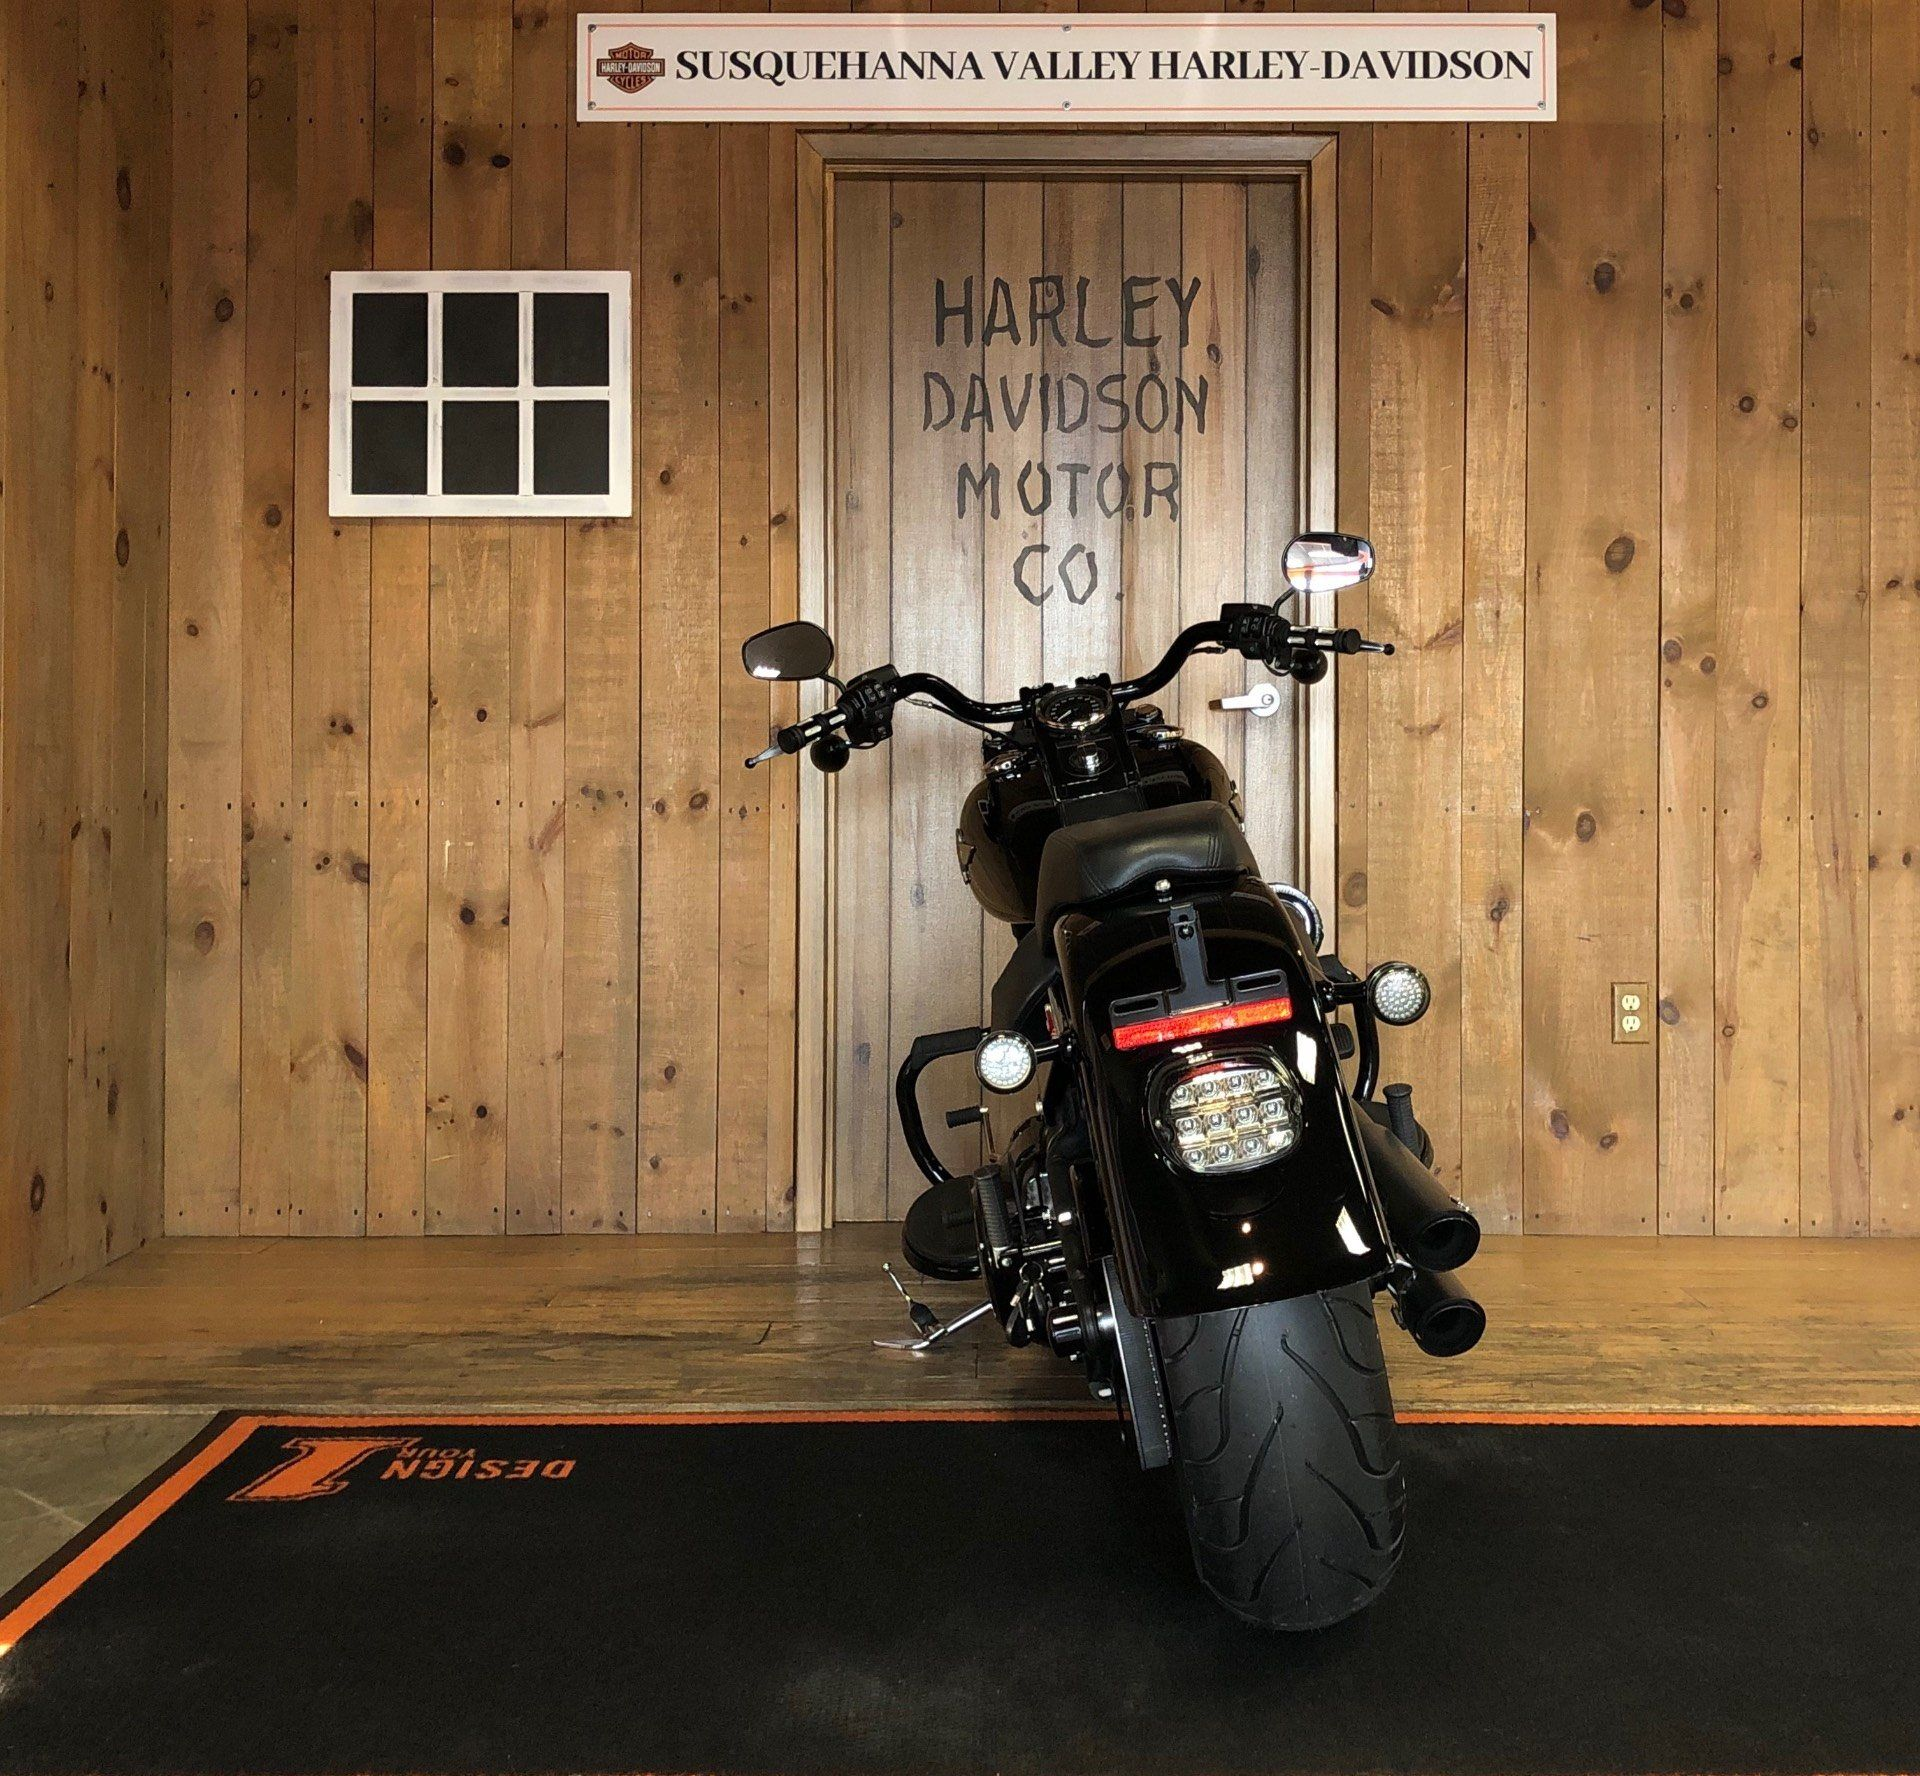 2016 Harley-Davidson Fat Boy Lo w/ 110 Motor in Harrisburg, Pennsylvania - Photo 8